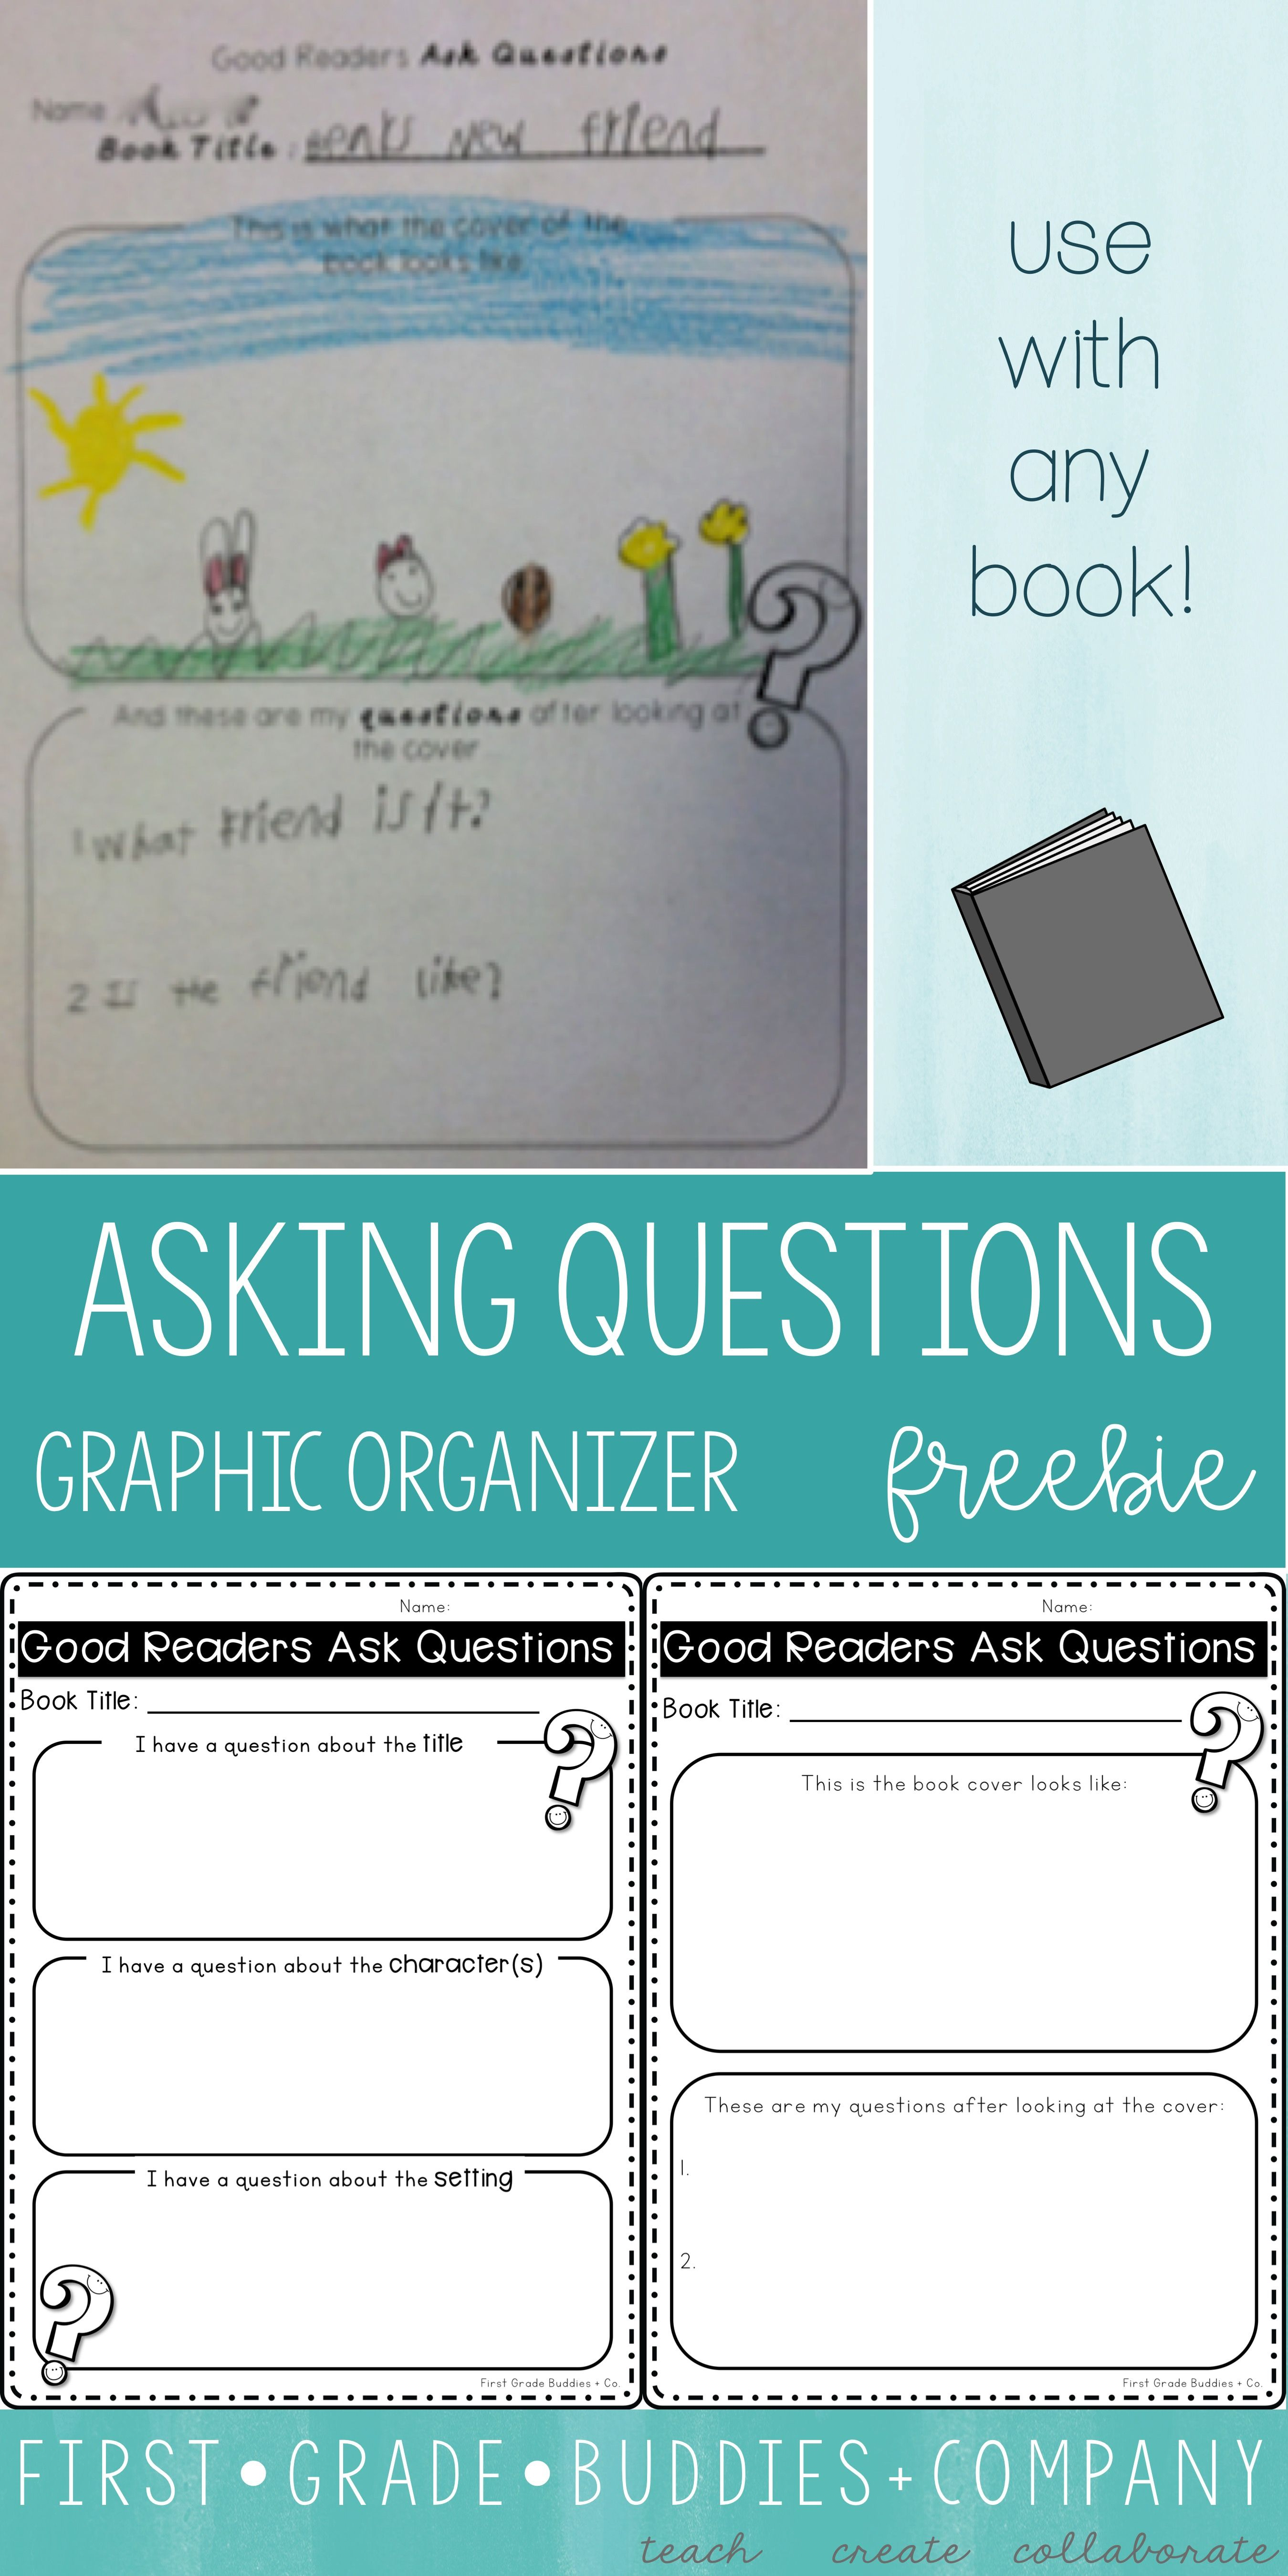 First Grade Buddies: Graphic Organizers for ANY Book! We created one great  big F…   Upper elementary reading [ 5399 x 2699 Pixel ]